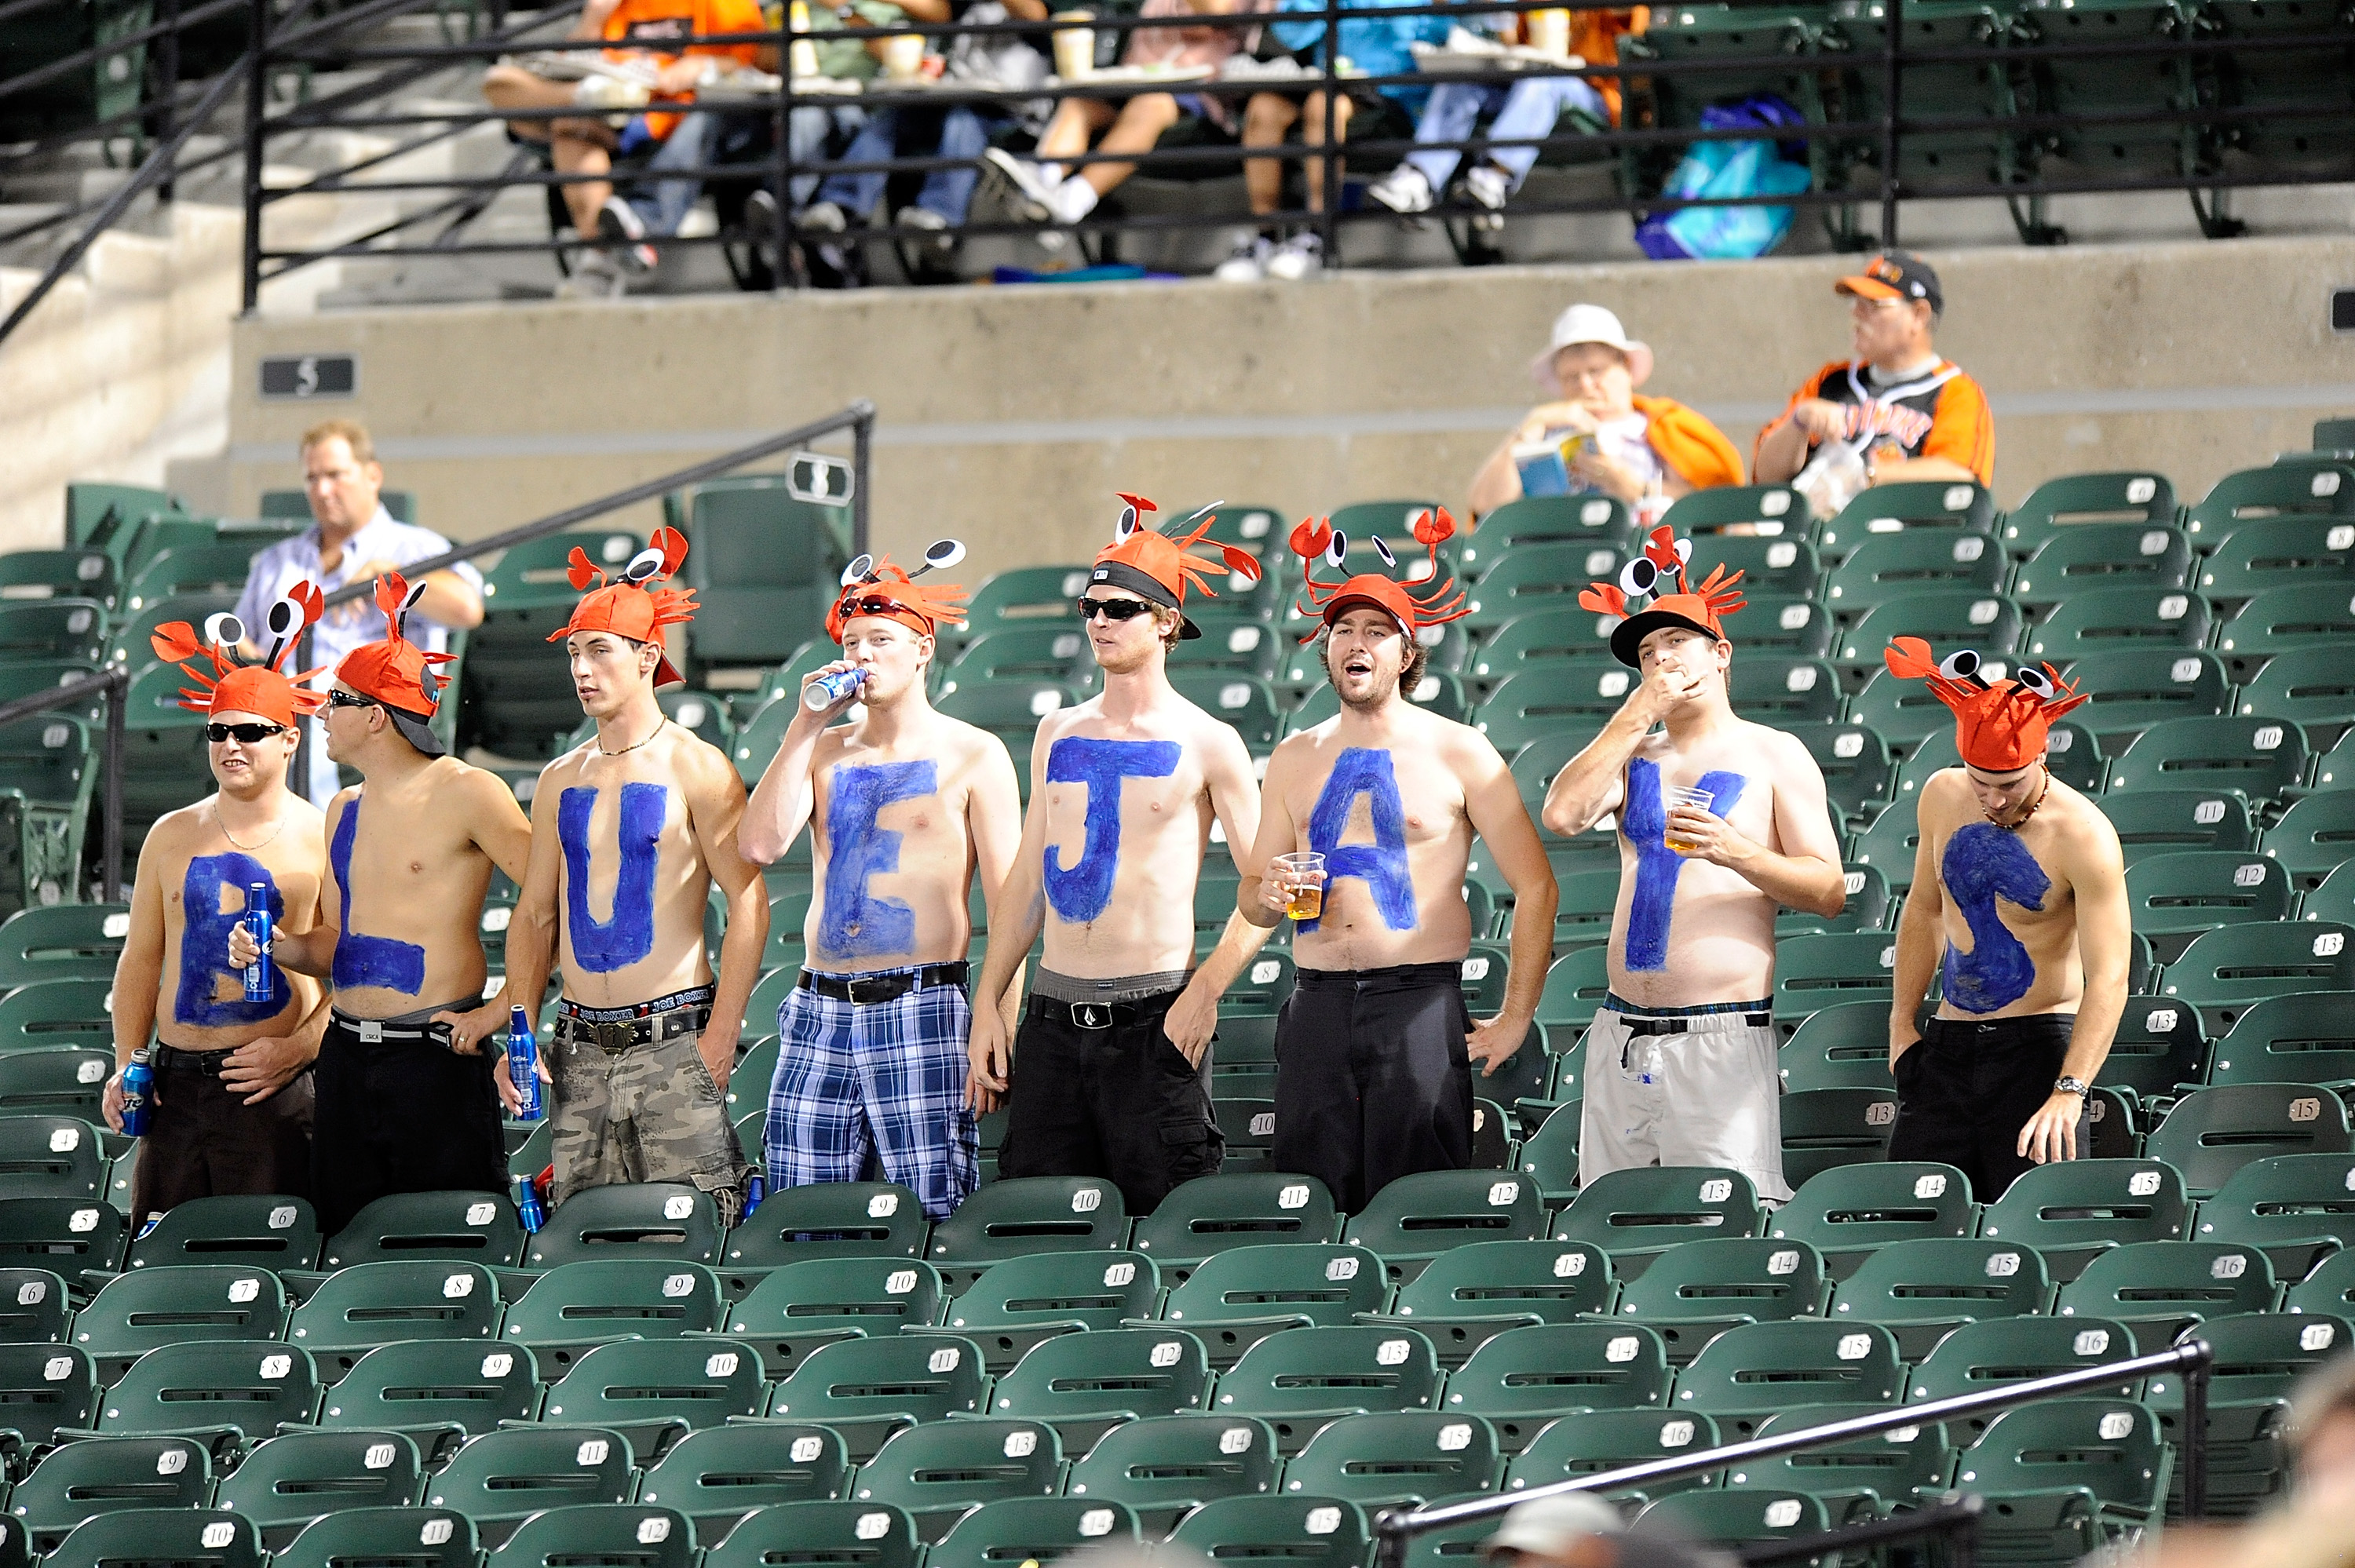 BALTIMORE - SEPTEMBER 13:  Blue Jays fans watch the game between the Toronto Blue Jays and the Baltimore Orioles at Camden Yards on September 13, 2010 in Baltimore, Maryland.  (Photo by Greg Fiume/Getty Images)